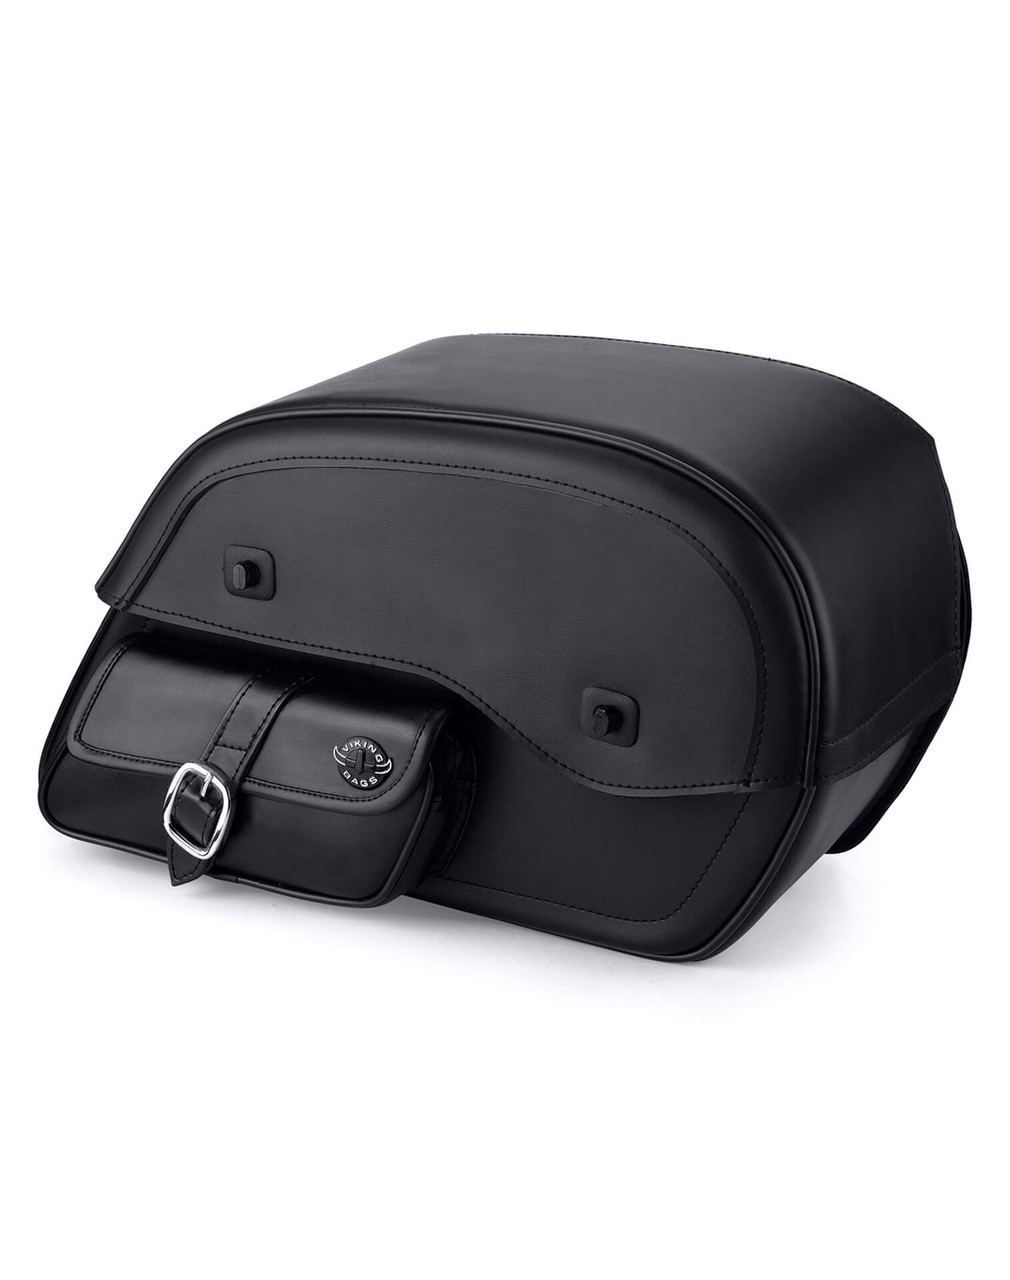 Honda 1500 Valkyrie Interstate SS Side Pocket Motorcycle Saddlebags Main View